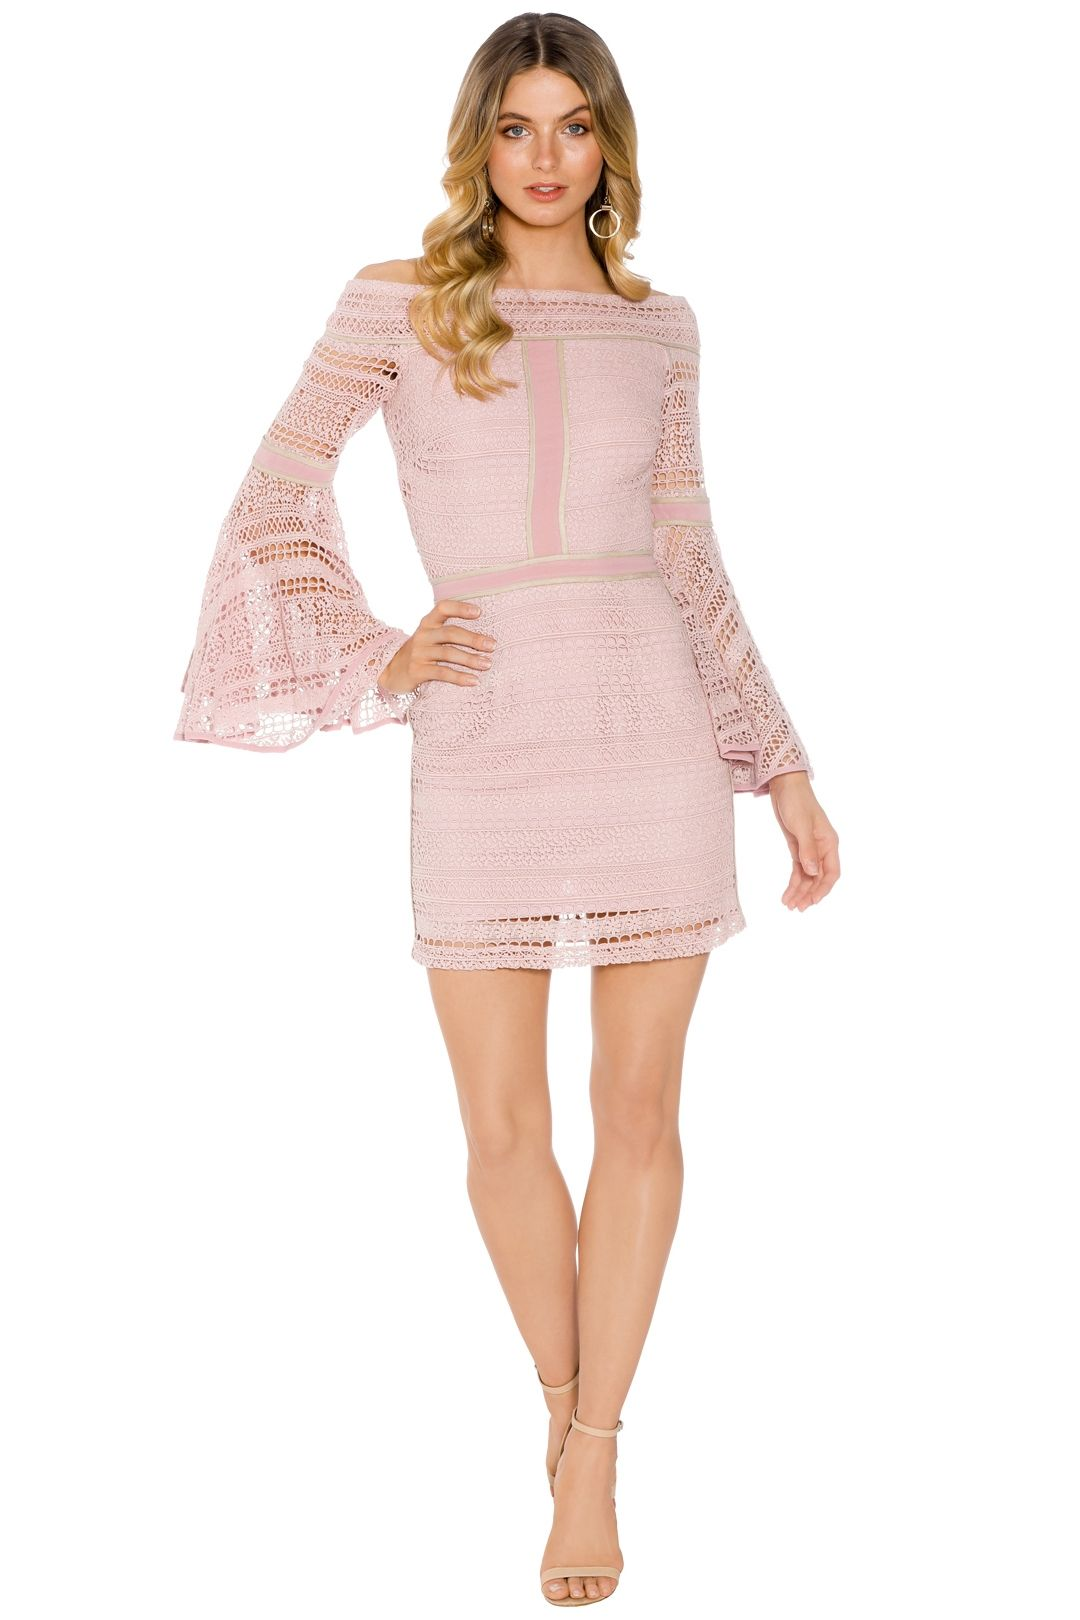 We Are Kindred - Daisy Lace Dress - Pink - Front